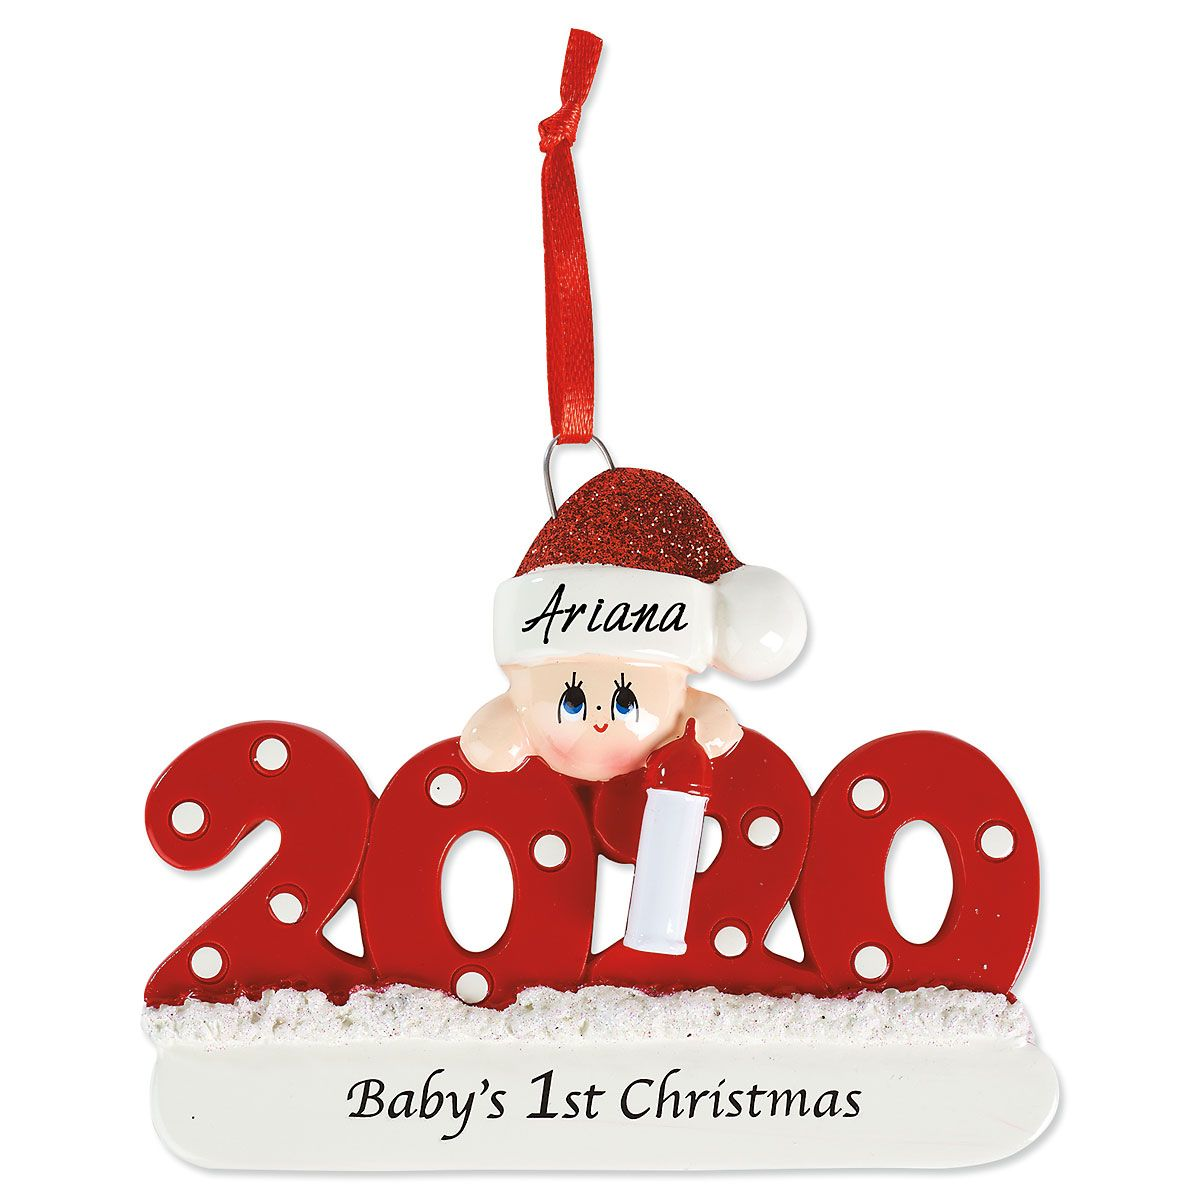 2020 Baby's First Christmas Ornament